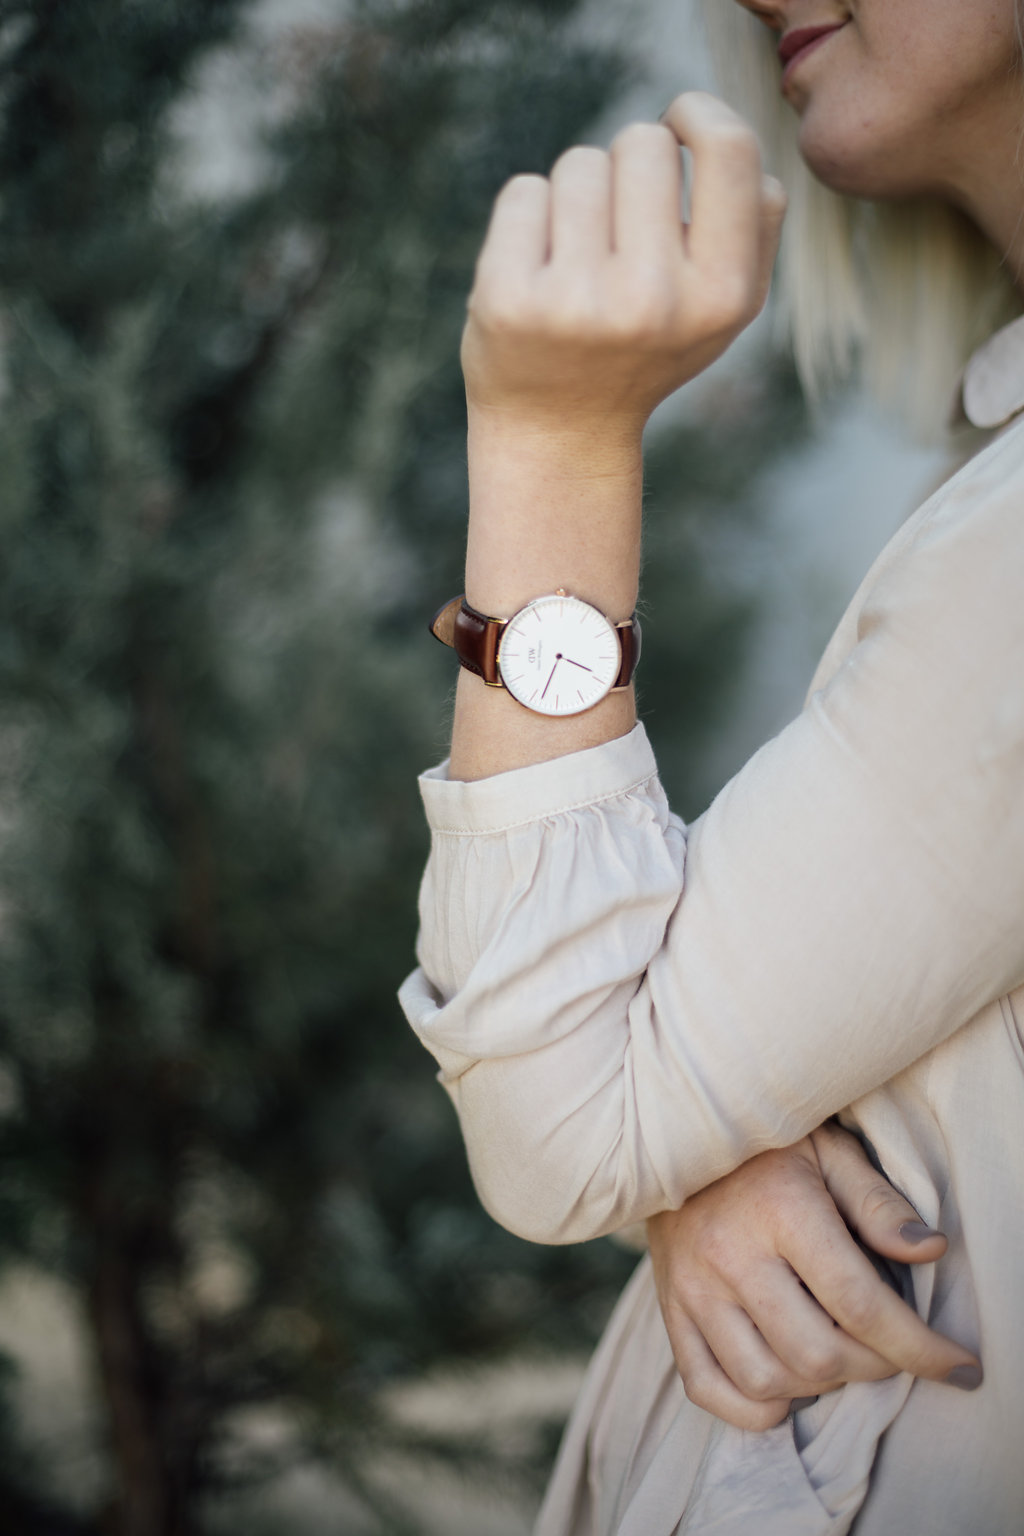 Watch / Daniel Wellington